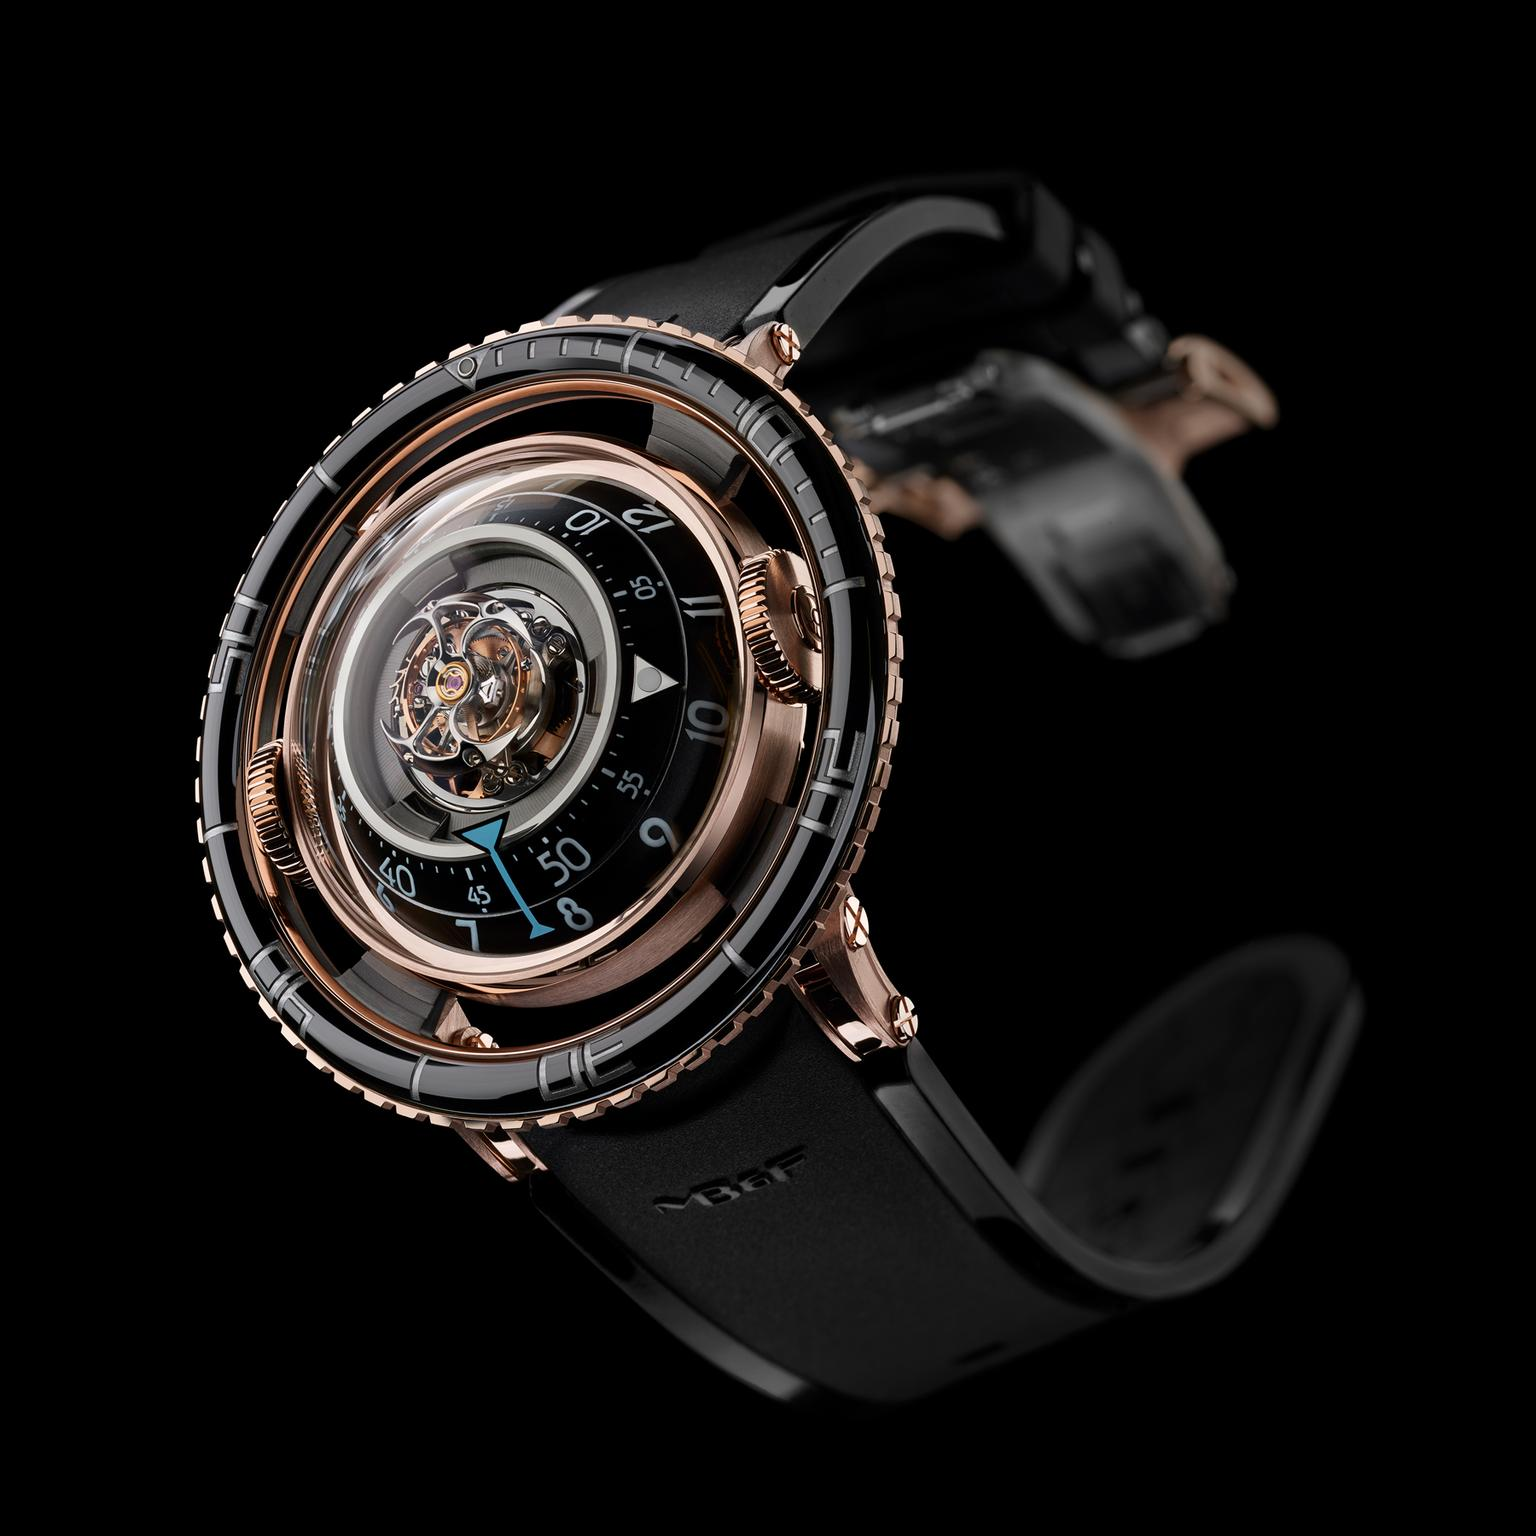 MB&F Aquapod flying tourbillon